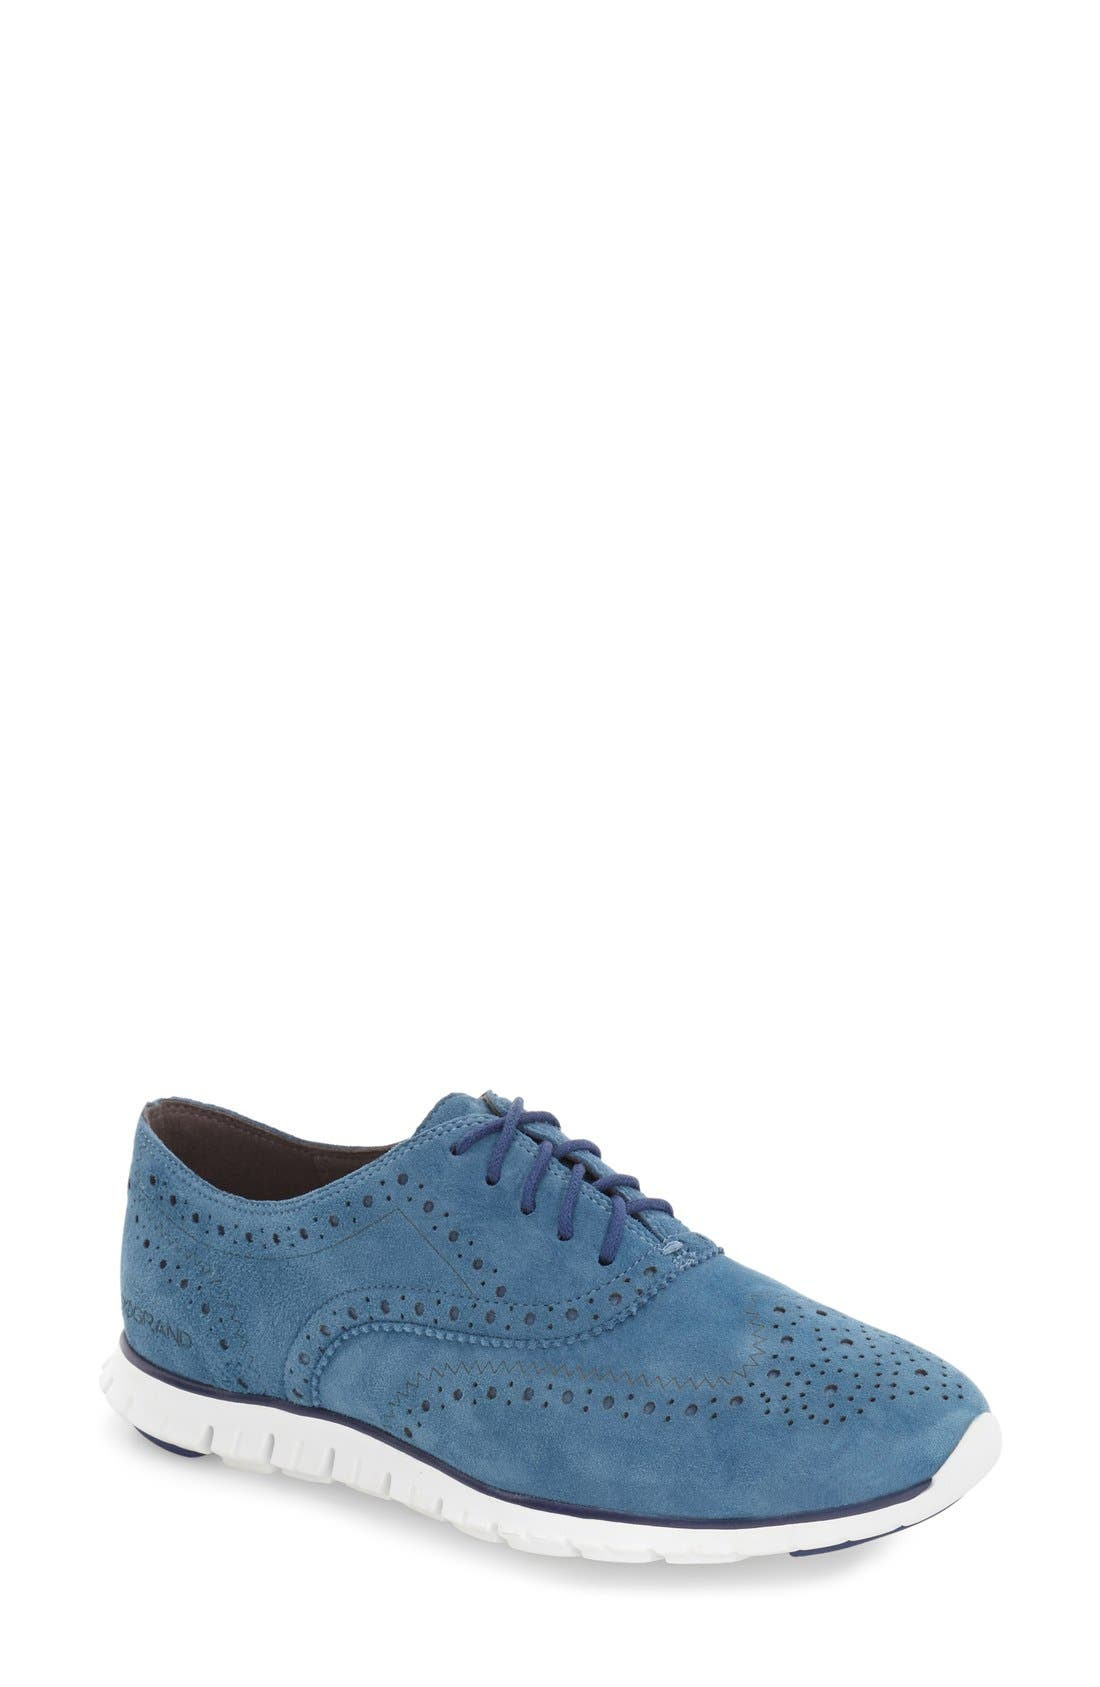 'ZeroGrand' Perforated Wingtip,                             Main thumbnail 23, color,